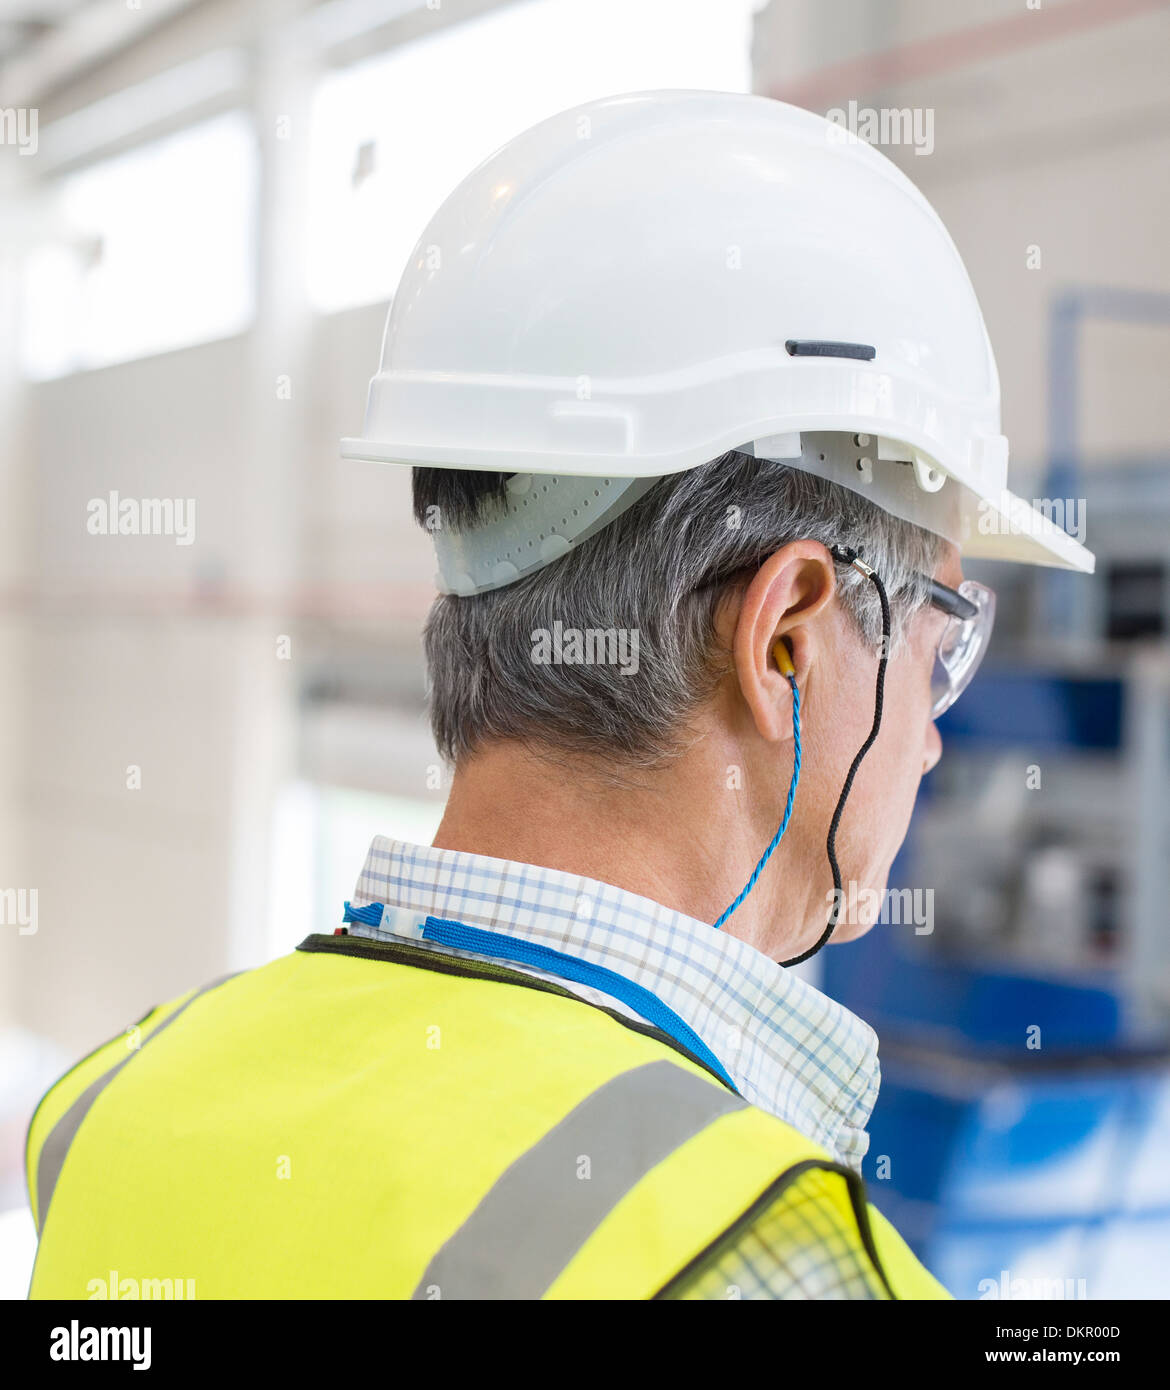 Worker wearing hard hat and ear plugs - Stock Image